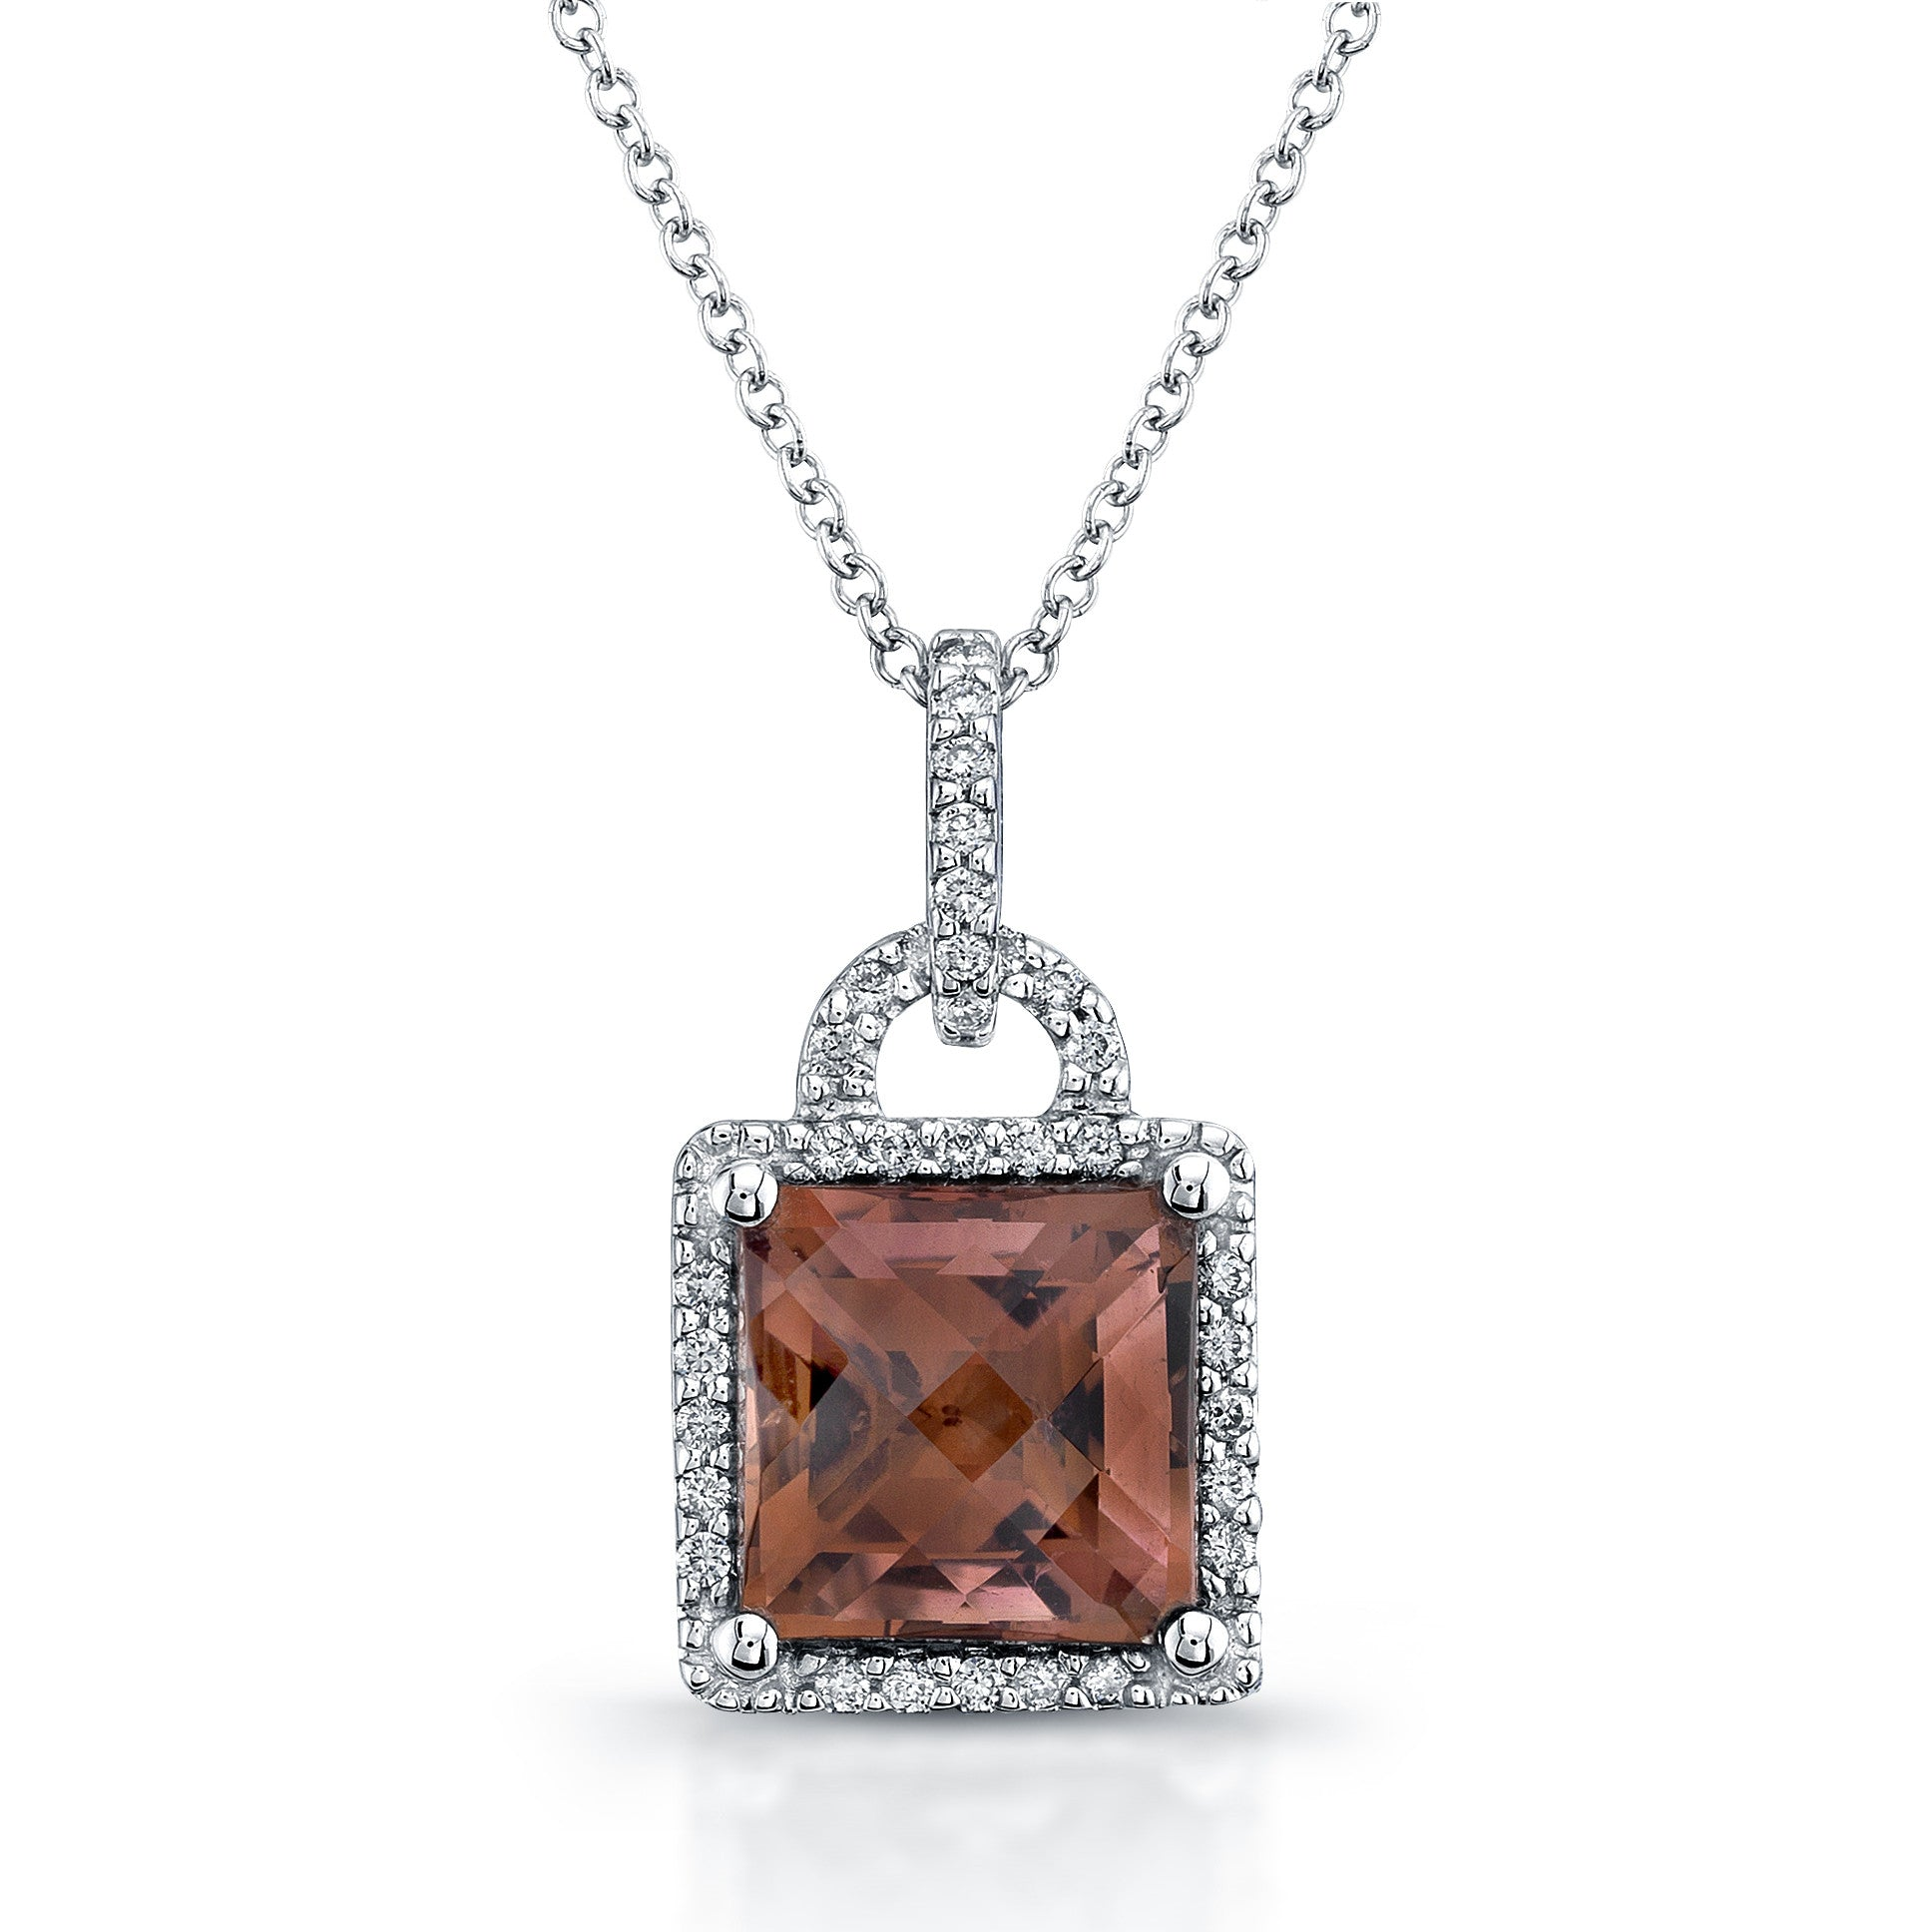 PRINCESS CUT PINK TOURMALINE DIAMOND PENDANT NECKLACE 18K WHITE GOLD 2.84CTW